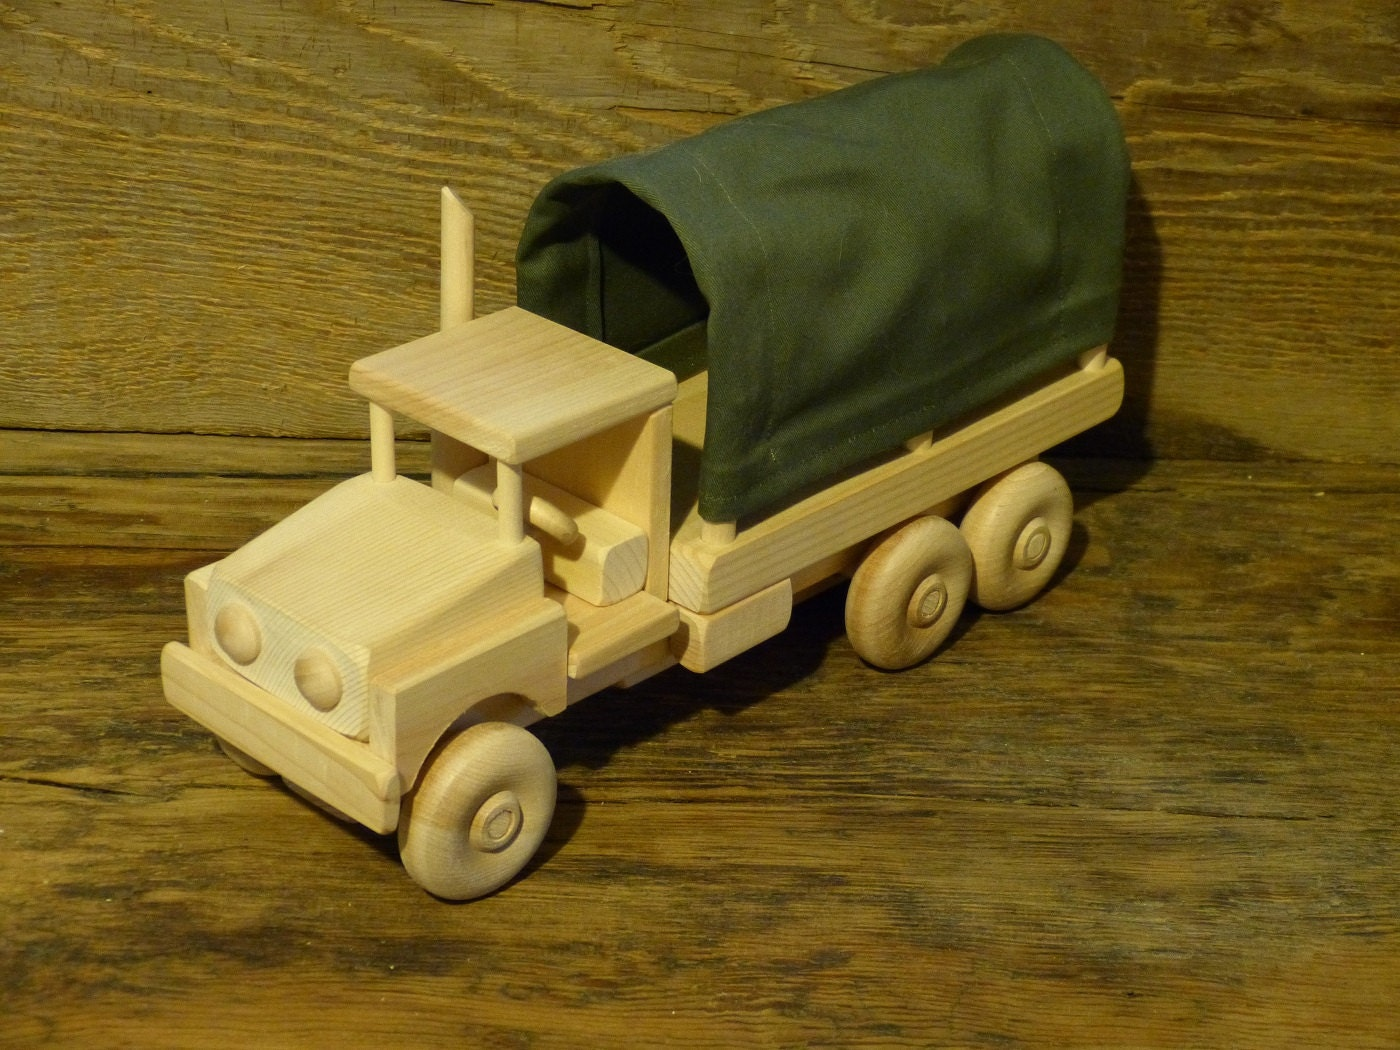 Wood Toy Truck Army Truck Wooden Toys Canopy Handmade